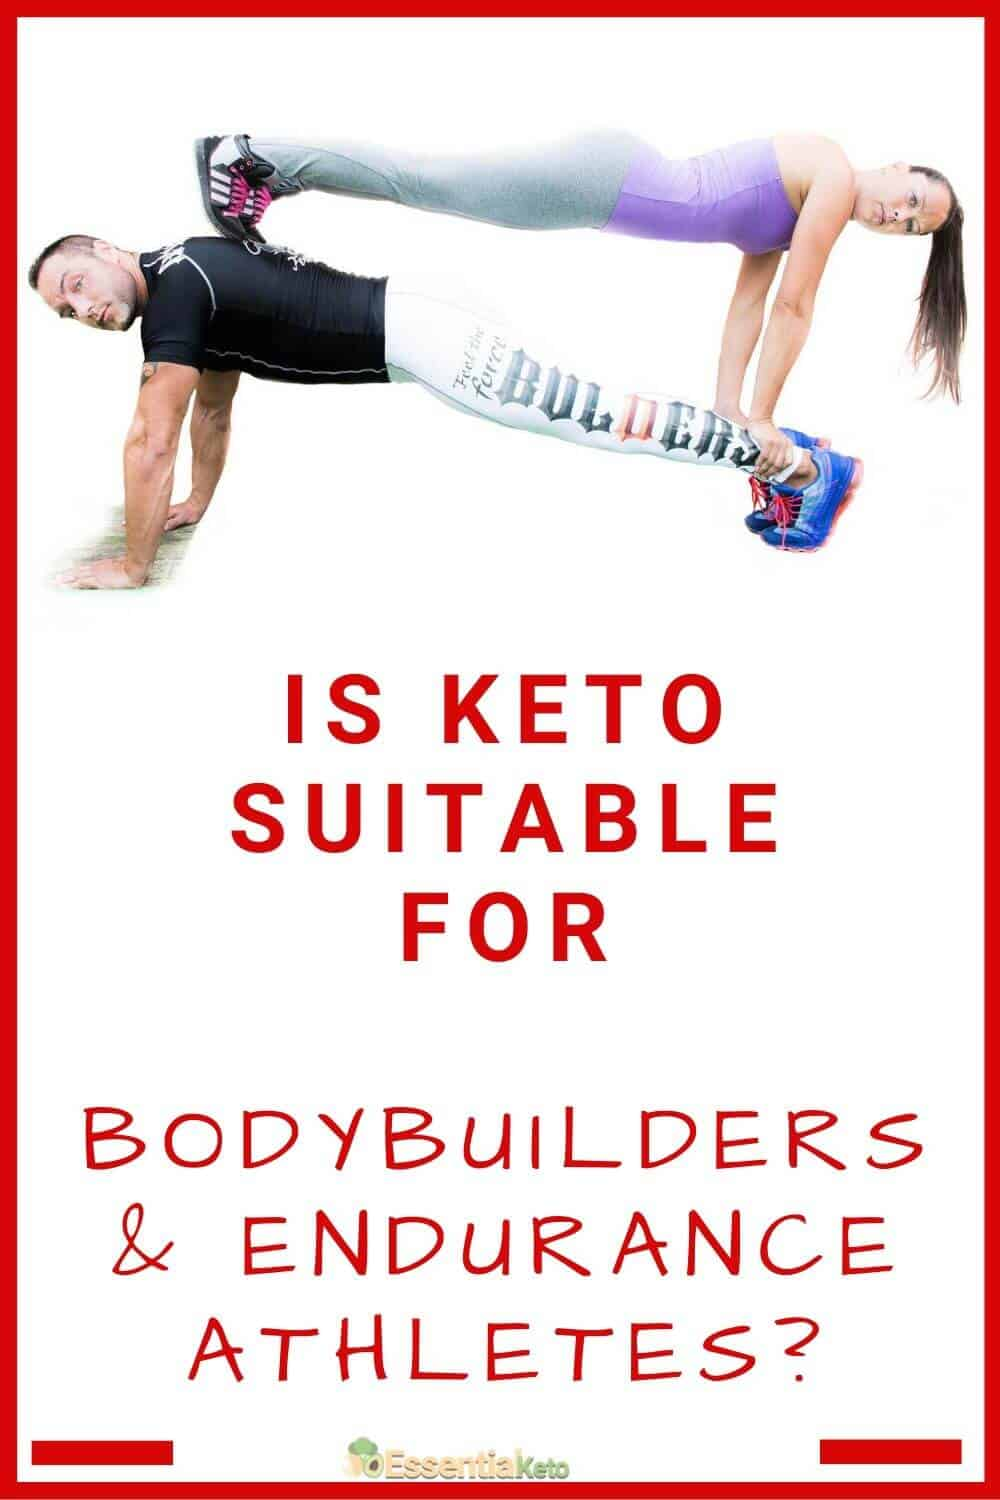 Is keto suitable for bodybuilders and endurance athletes_